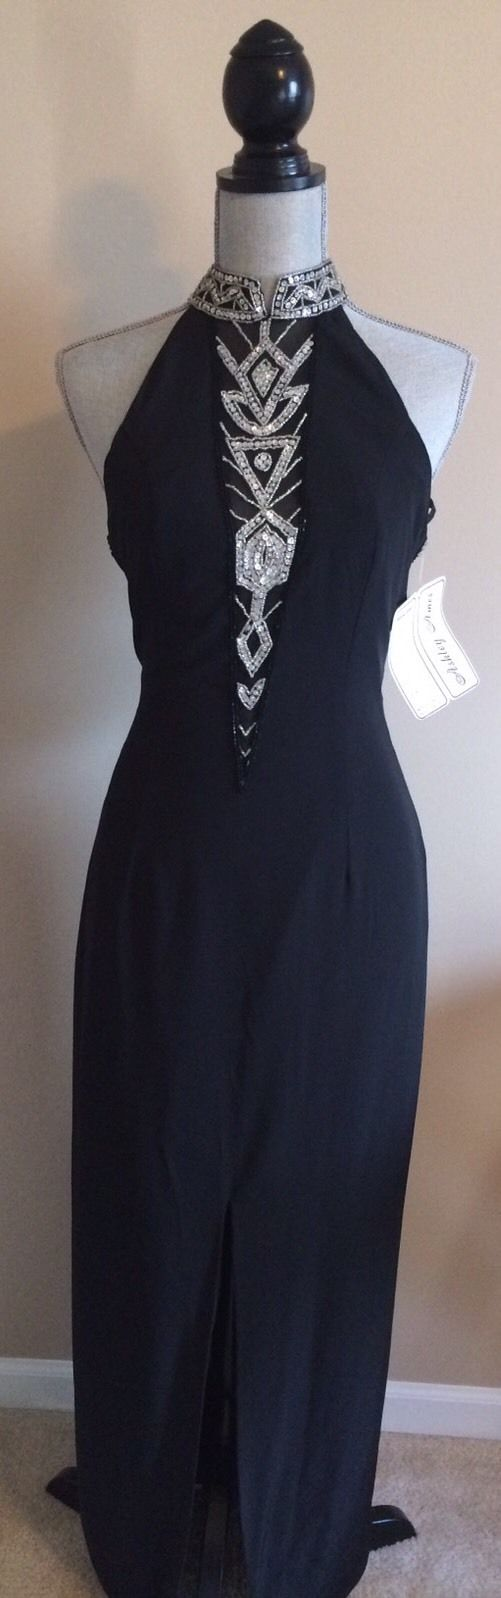 Cool awesome ashley ames long formal black sequin dress sz